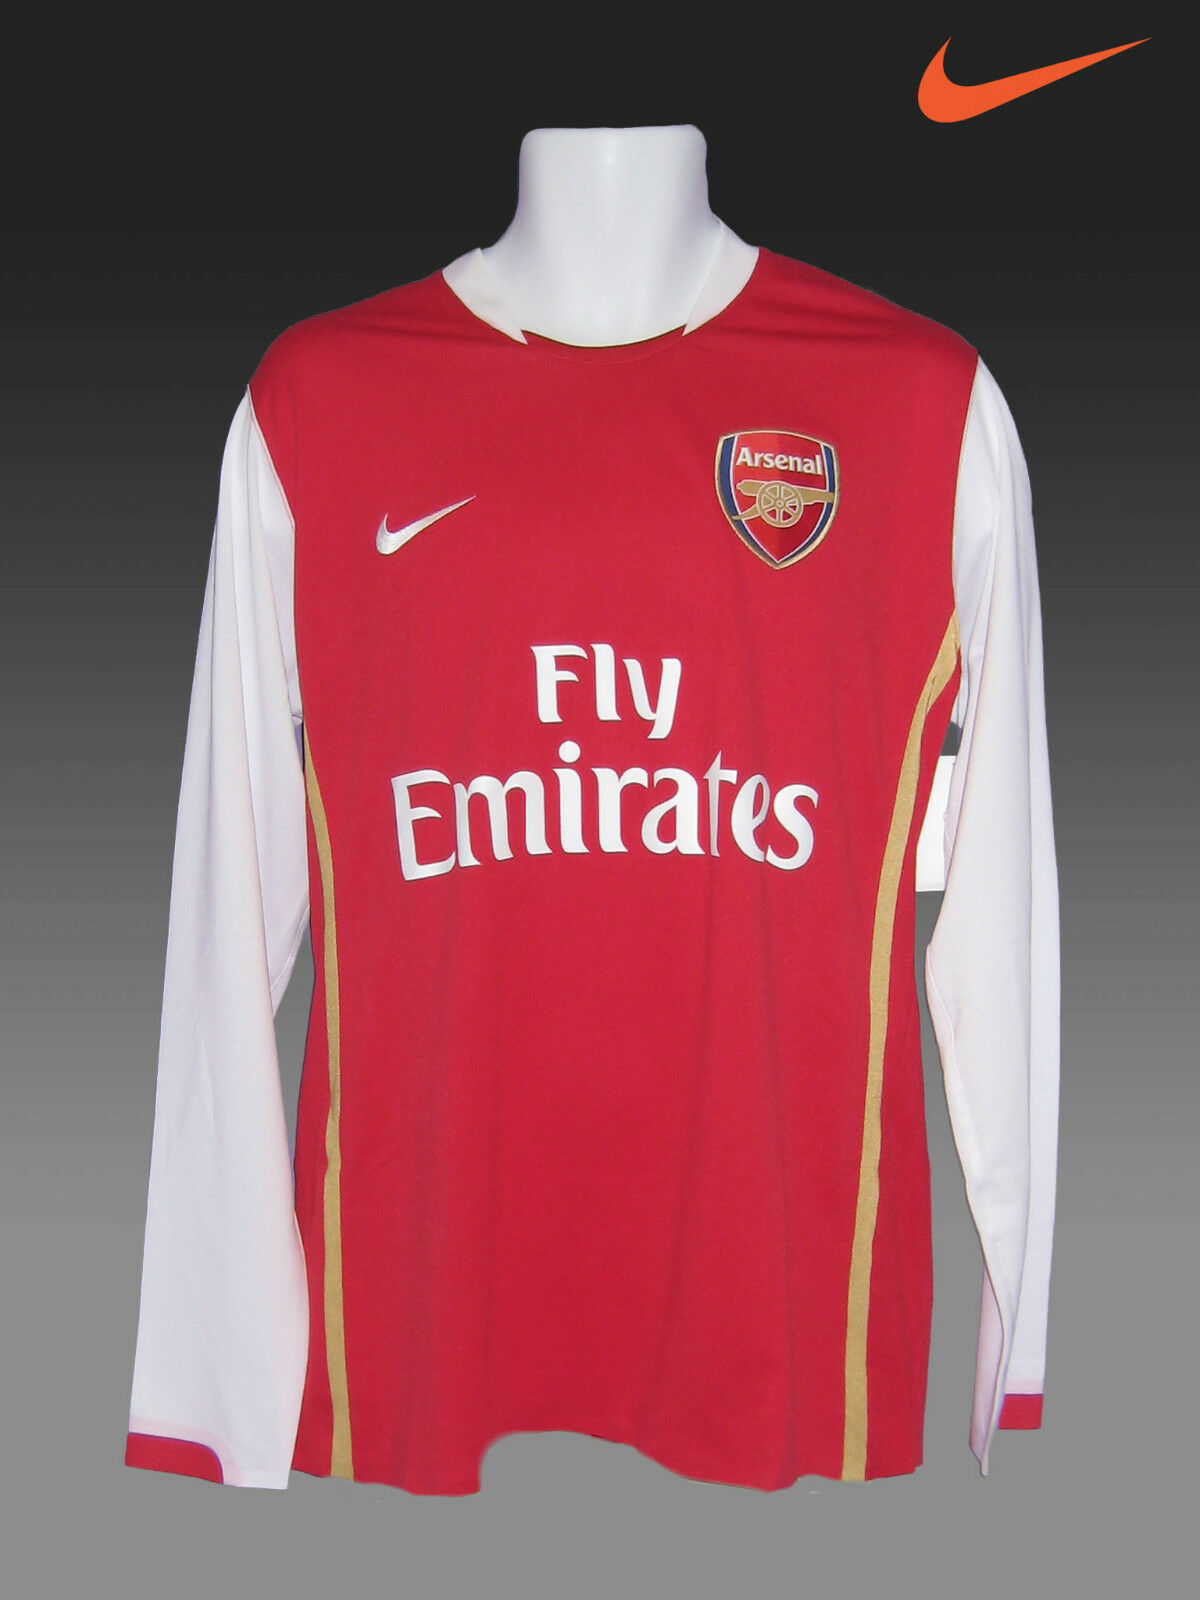 Nike Arsenal Fútbol Del Club Player Tema Cl Camisa 2006-08 Long Manga Grado a XL